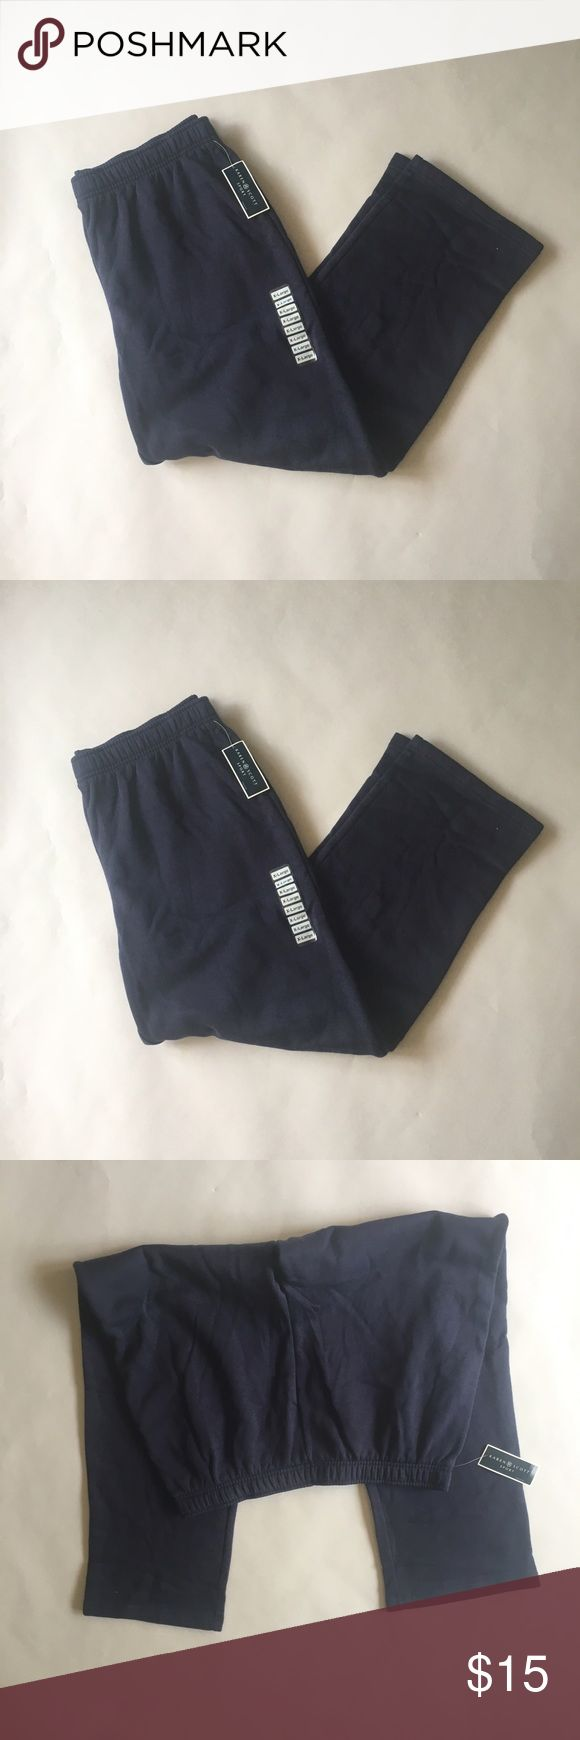 """Navy Blue athletic pants Navy blue athletic pants Brand: Karen Scott Sports via Macy's  Measurements: total length 42. Inseam 30 waist 19"""" lying flat  🚫modeling  🚫trades (askers will be ignored) or lowballing  ✅ will consider offers made through BLUE offer button.  LB ✅ great bundle discount. Macy's Pants Track Pants & Joggers"""